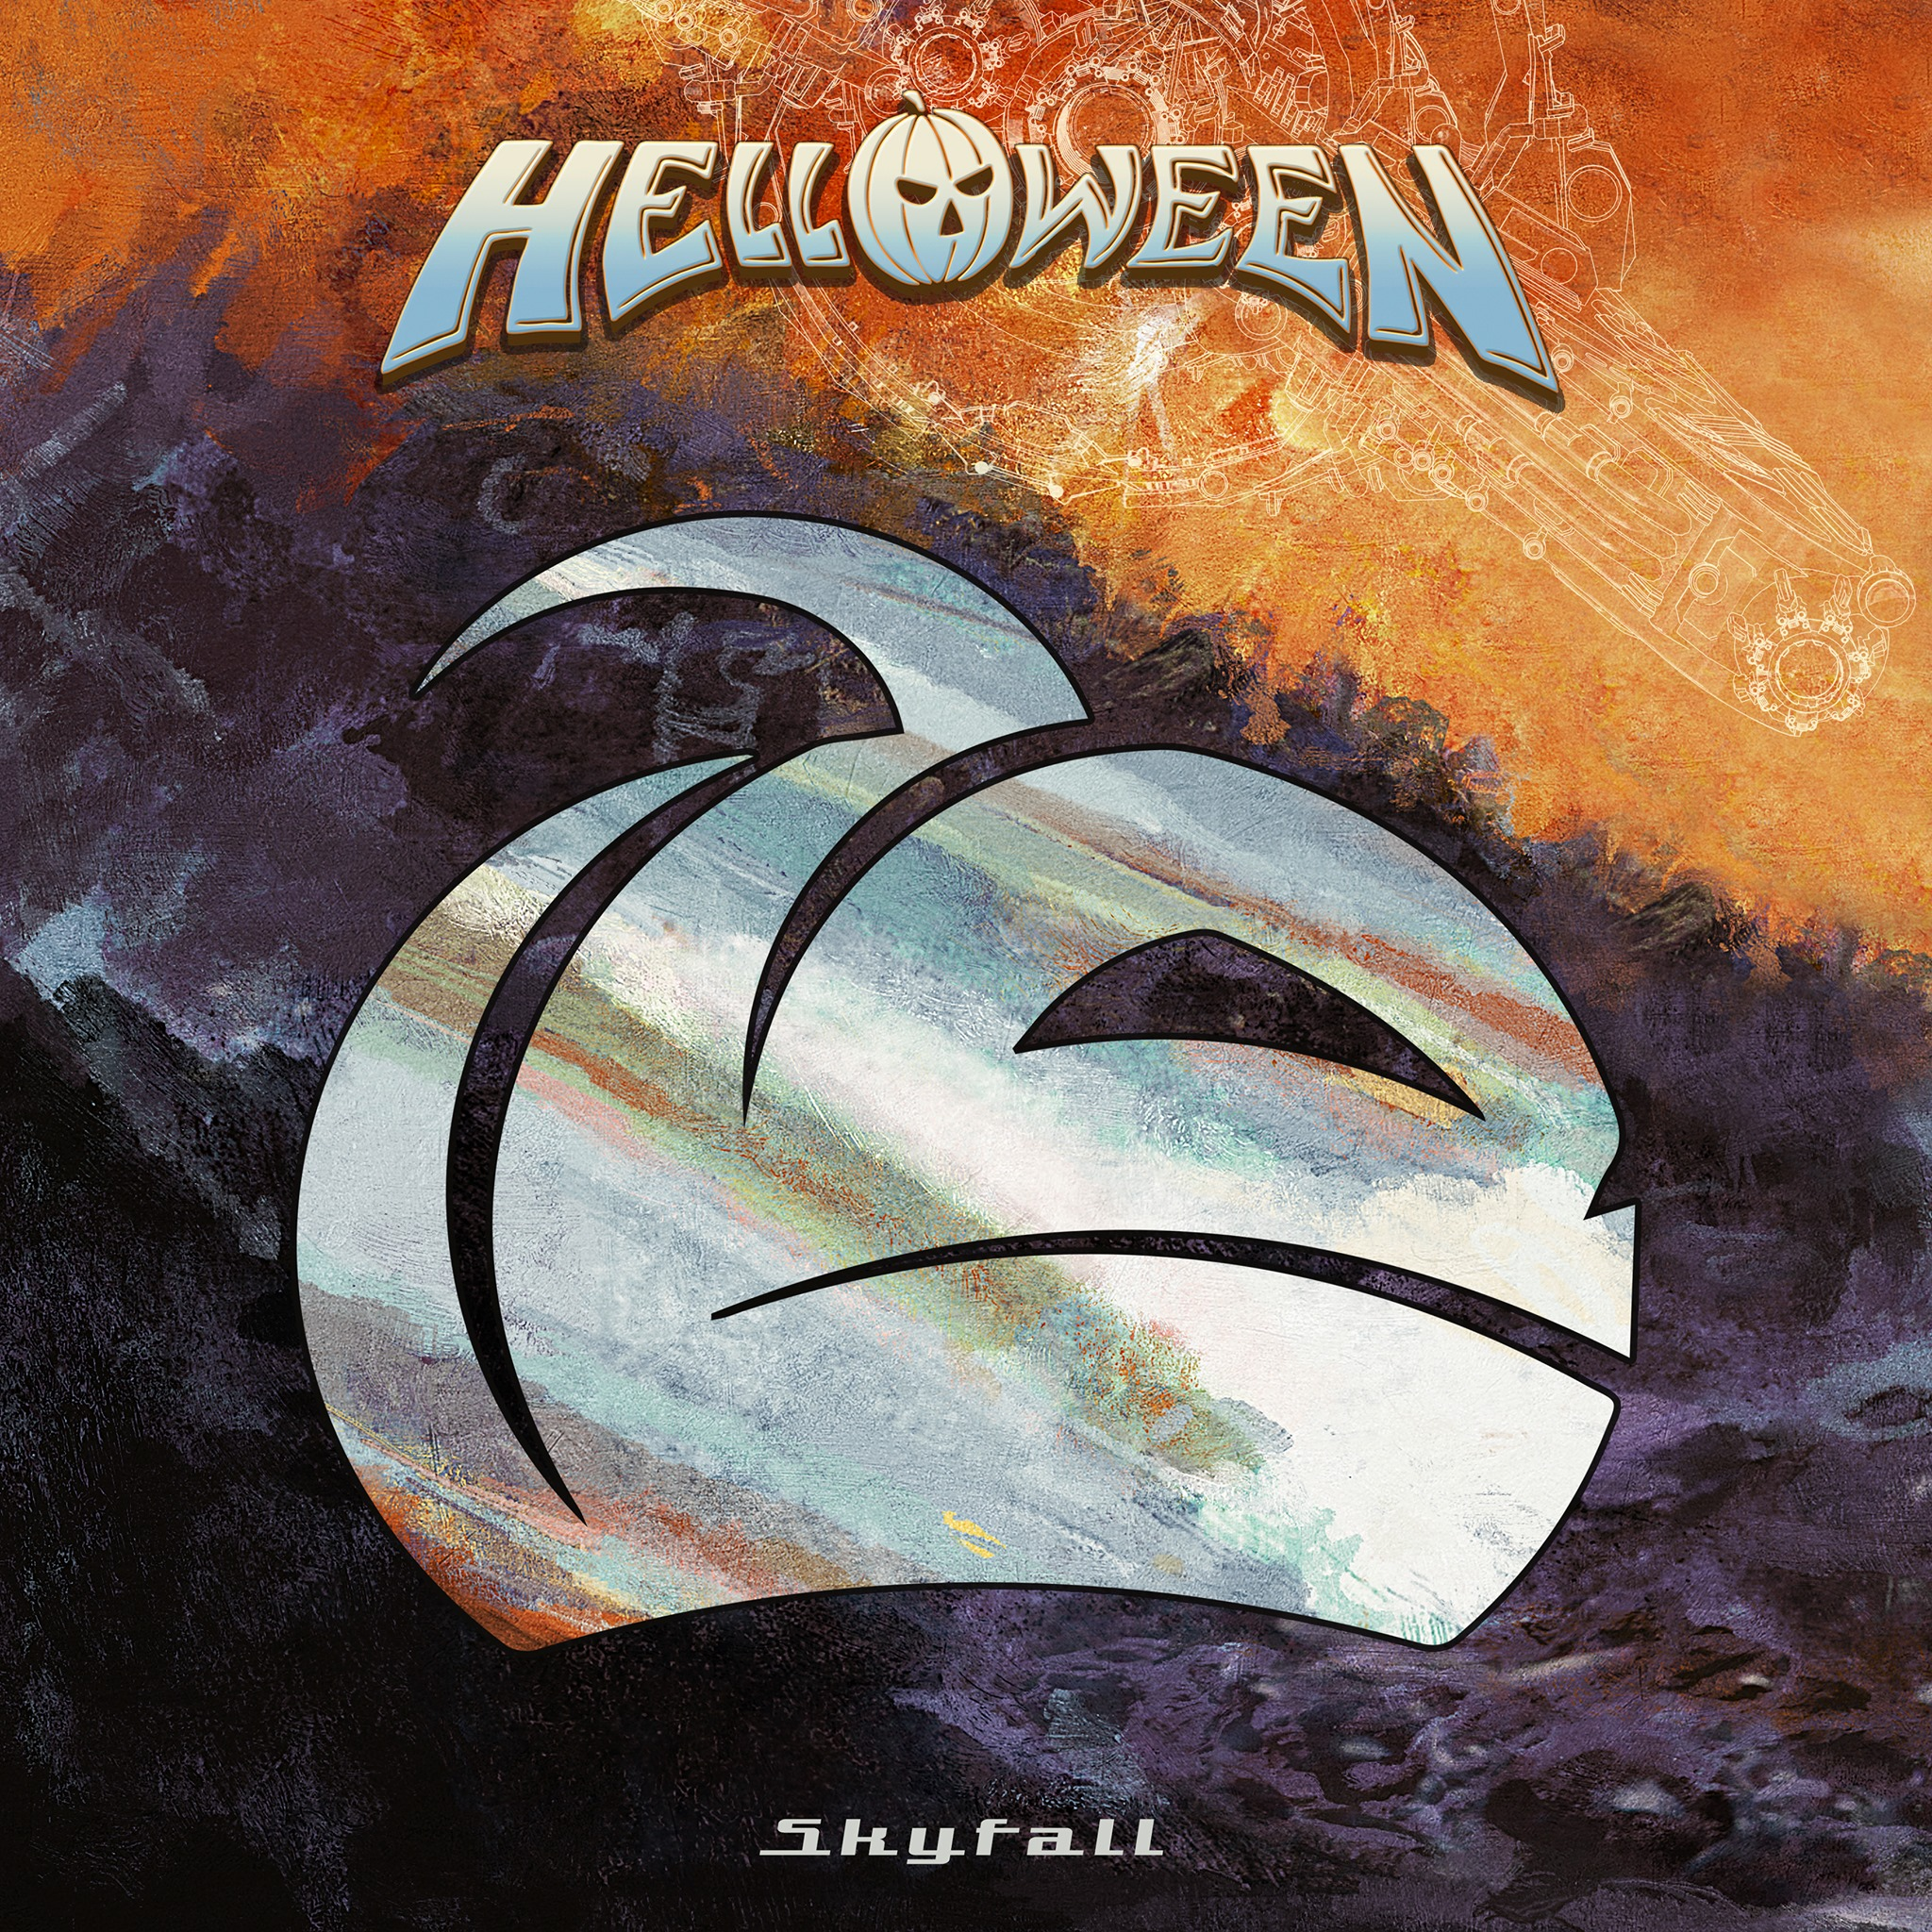 helloween skyfall album cover artwork